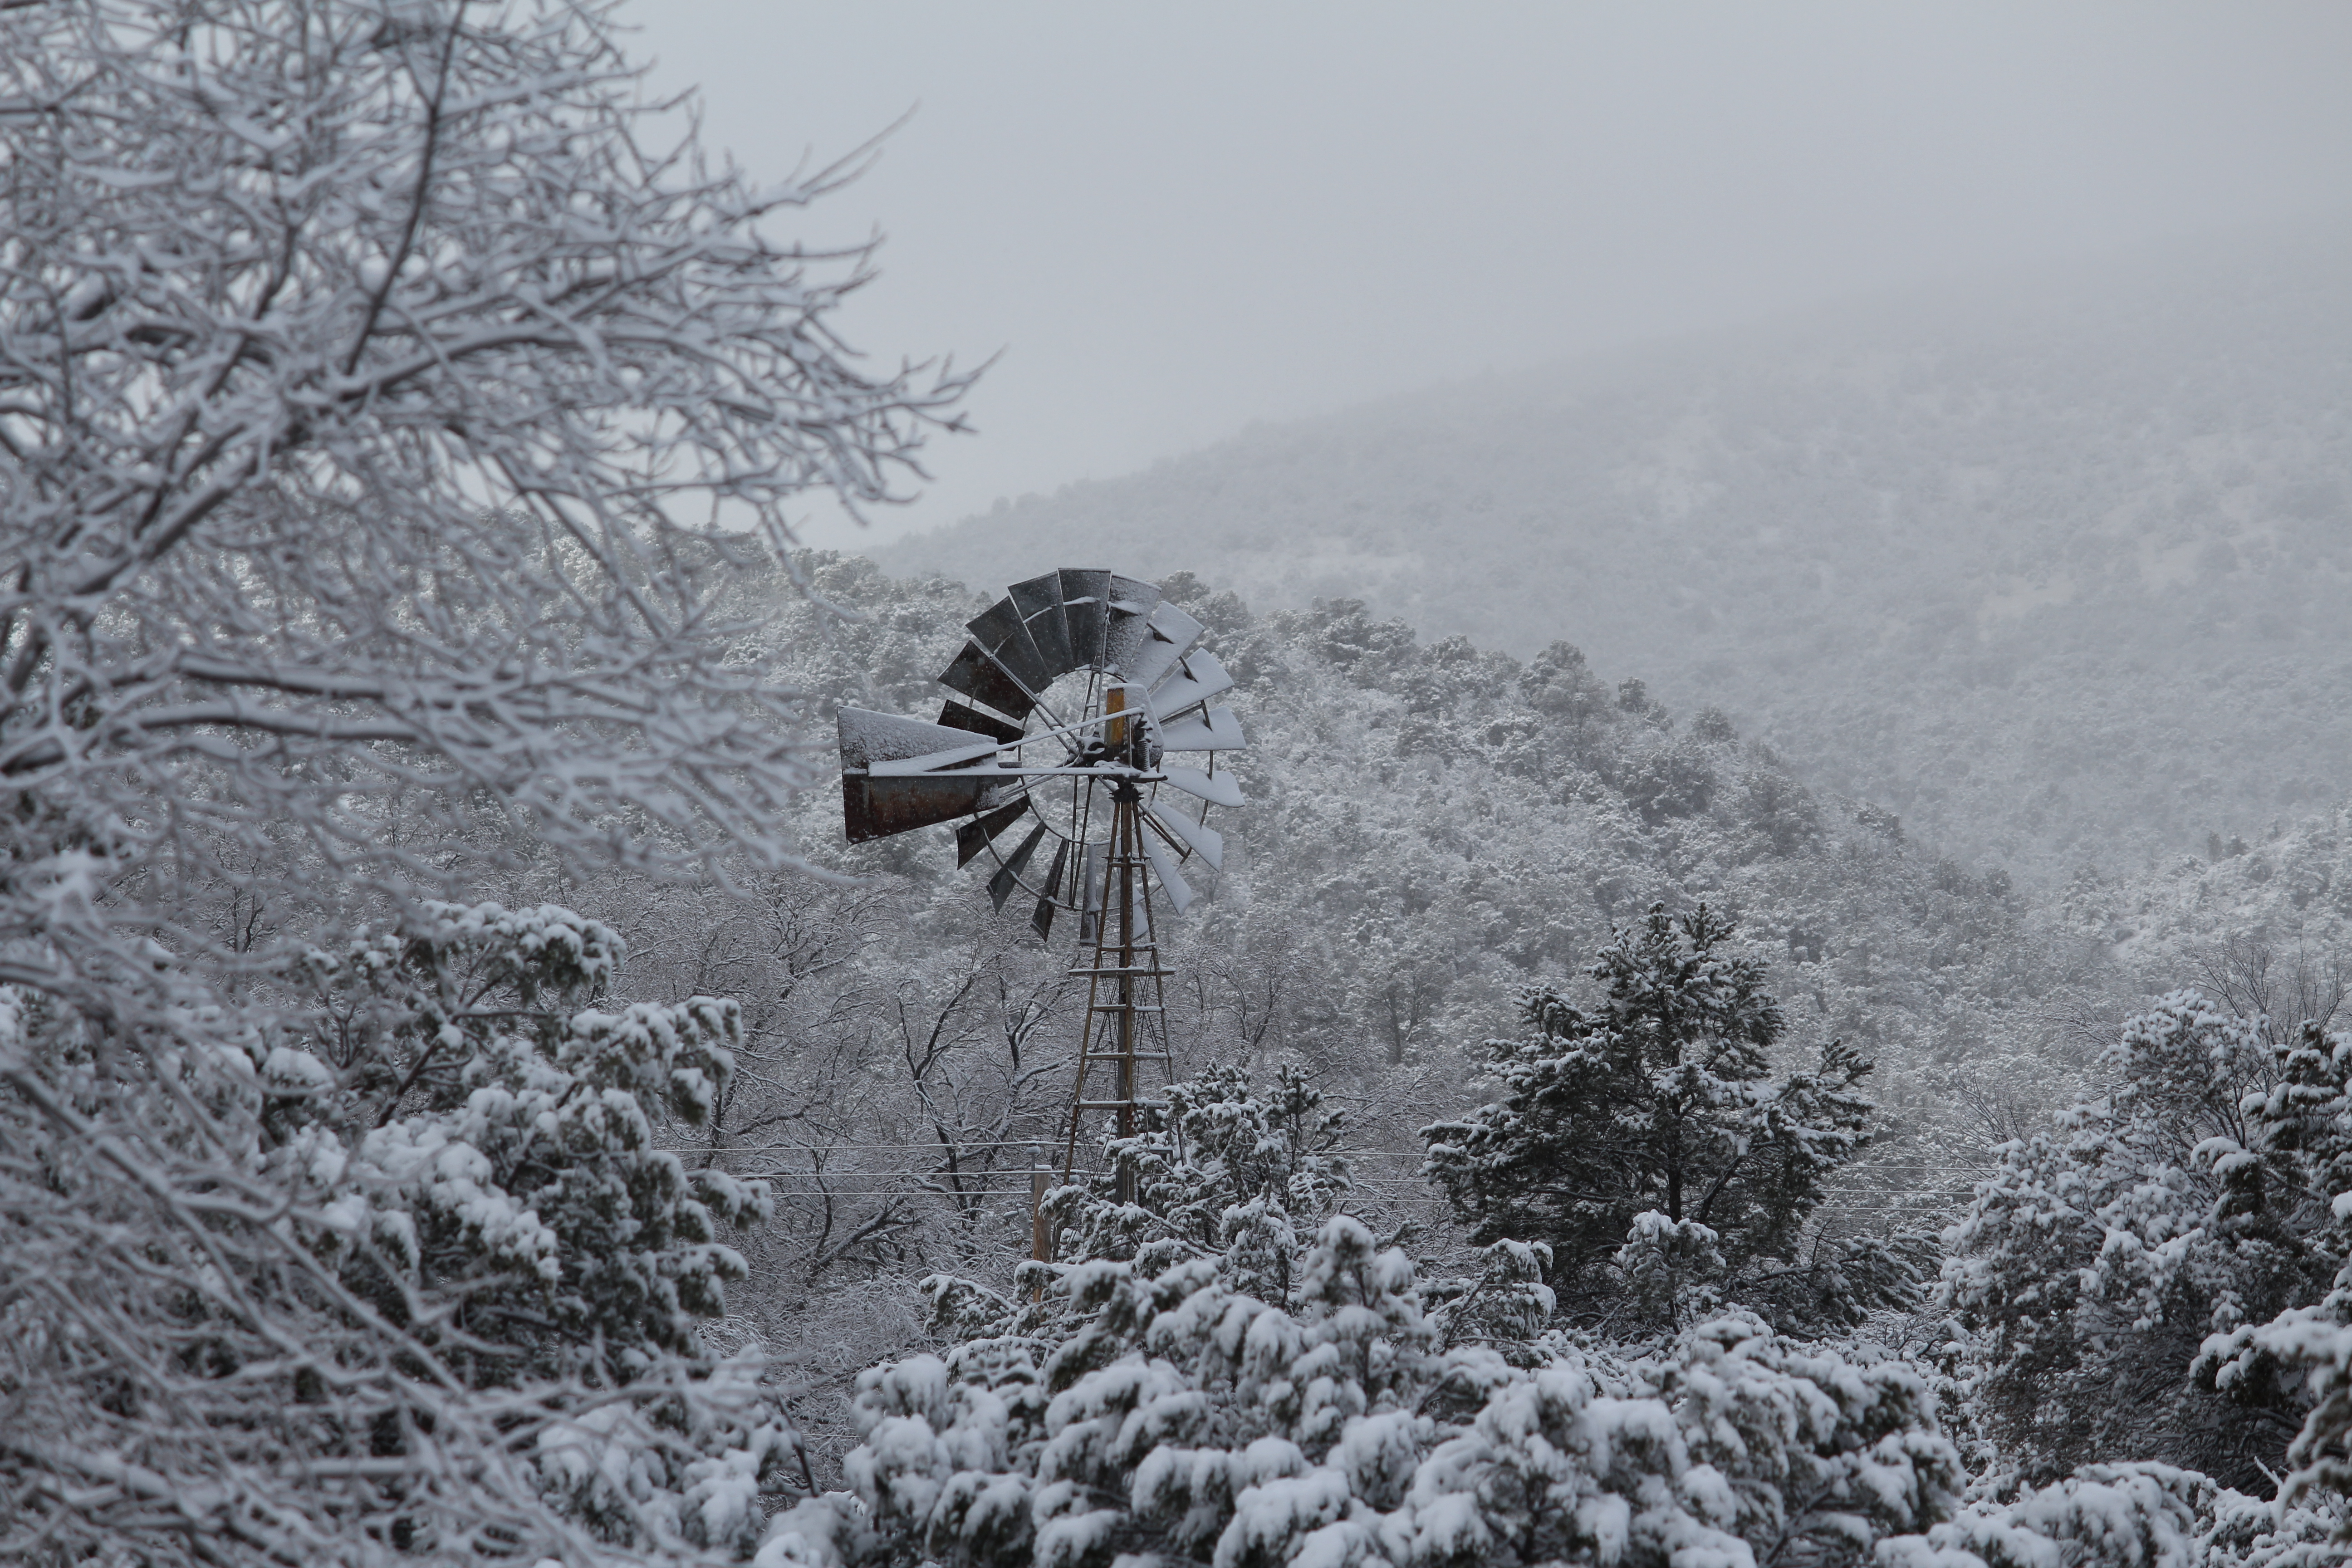 Pictures from Silver City mountain area (2) Windmill on property